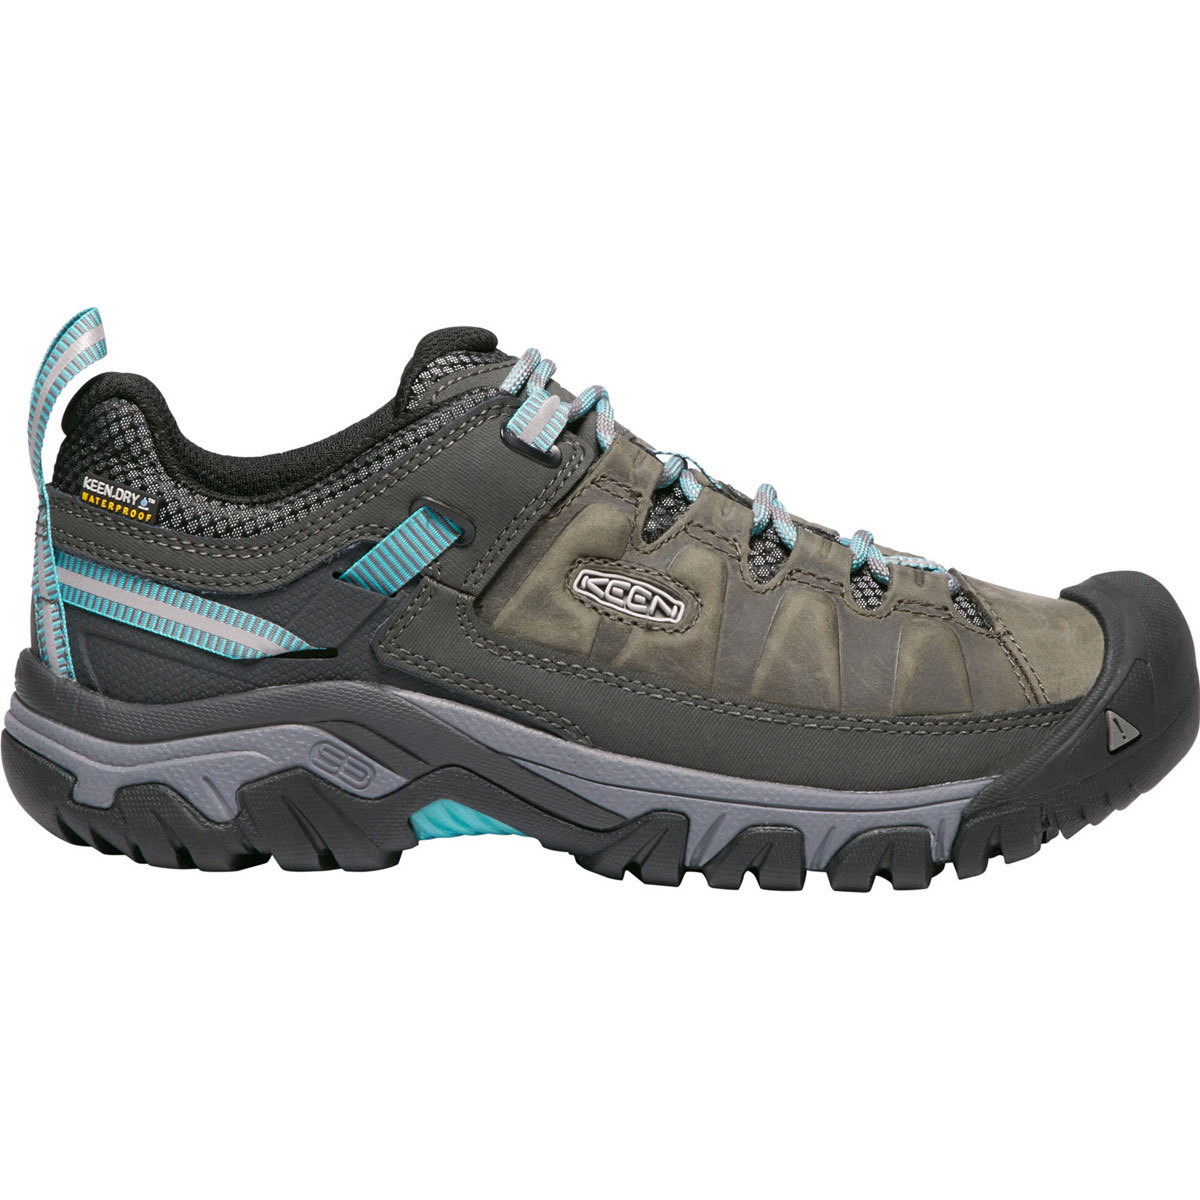 Keen Women's Targhee Iii Waterproof Low Hiking Shoes - Black, 10